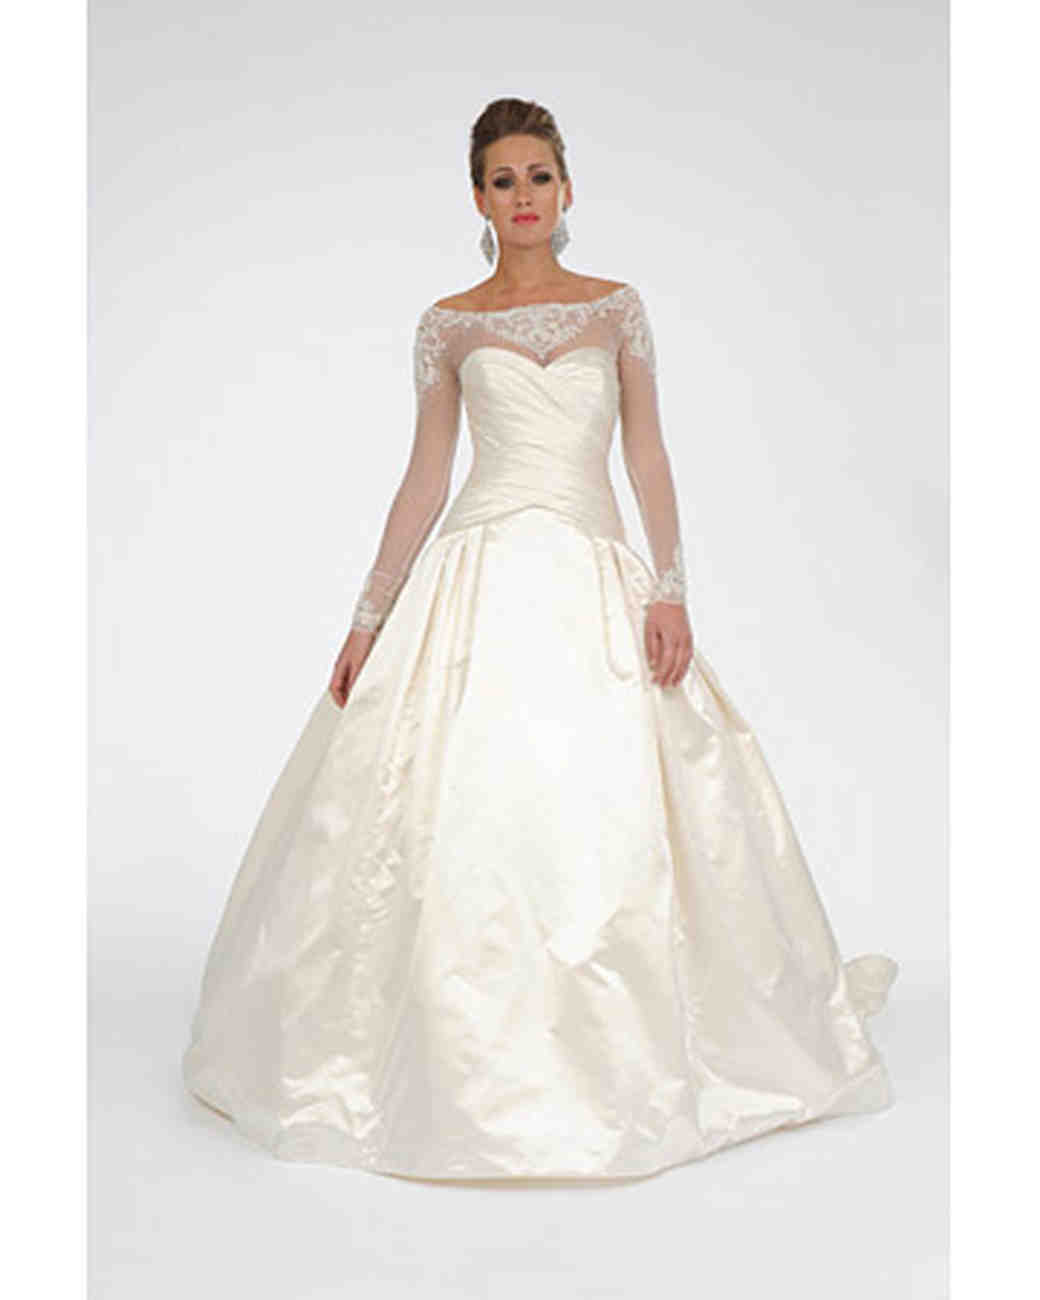 Bridal Gowns Boston : Get kate middleton s royal wedding dress look martha